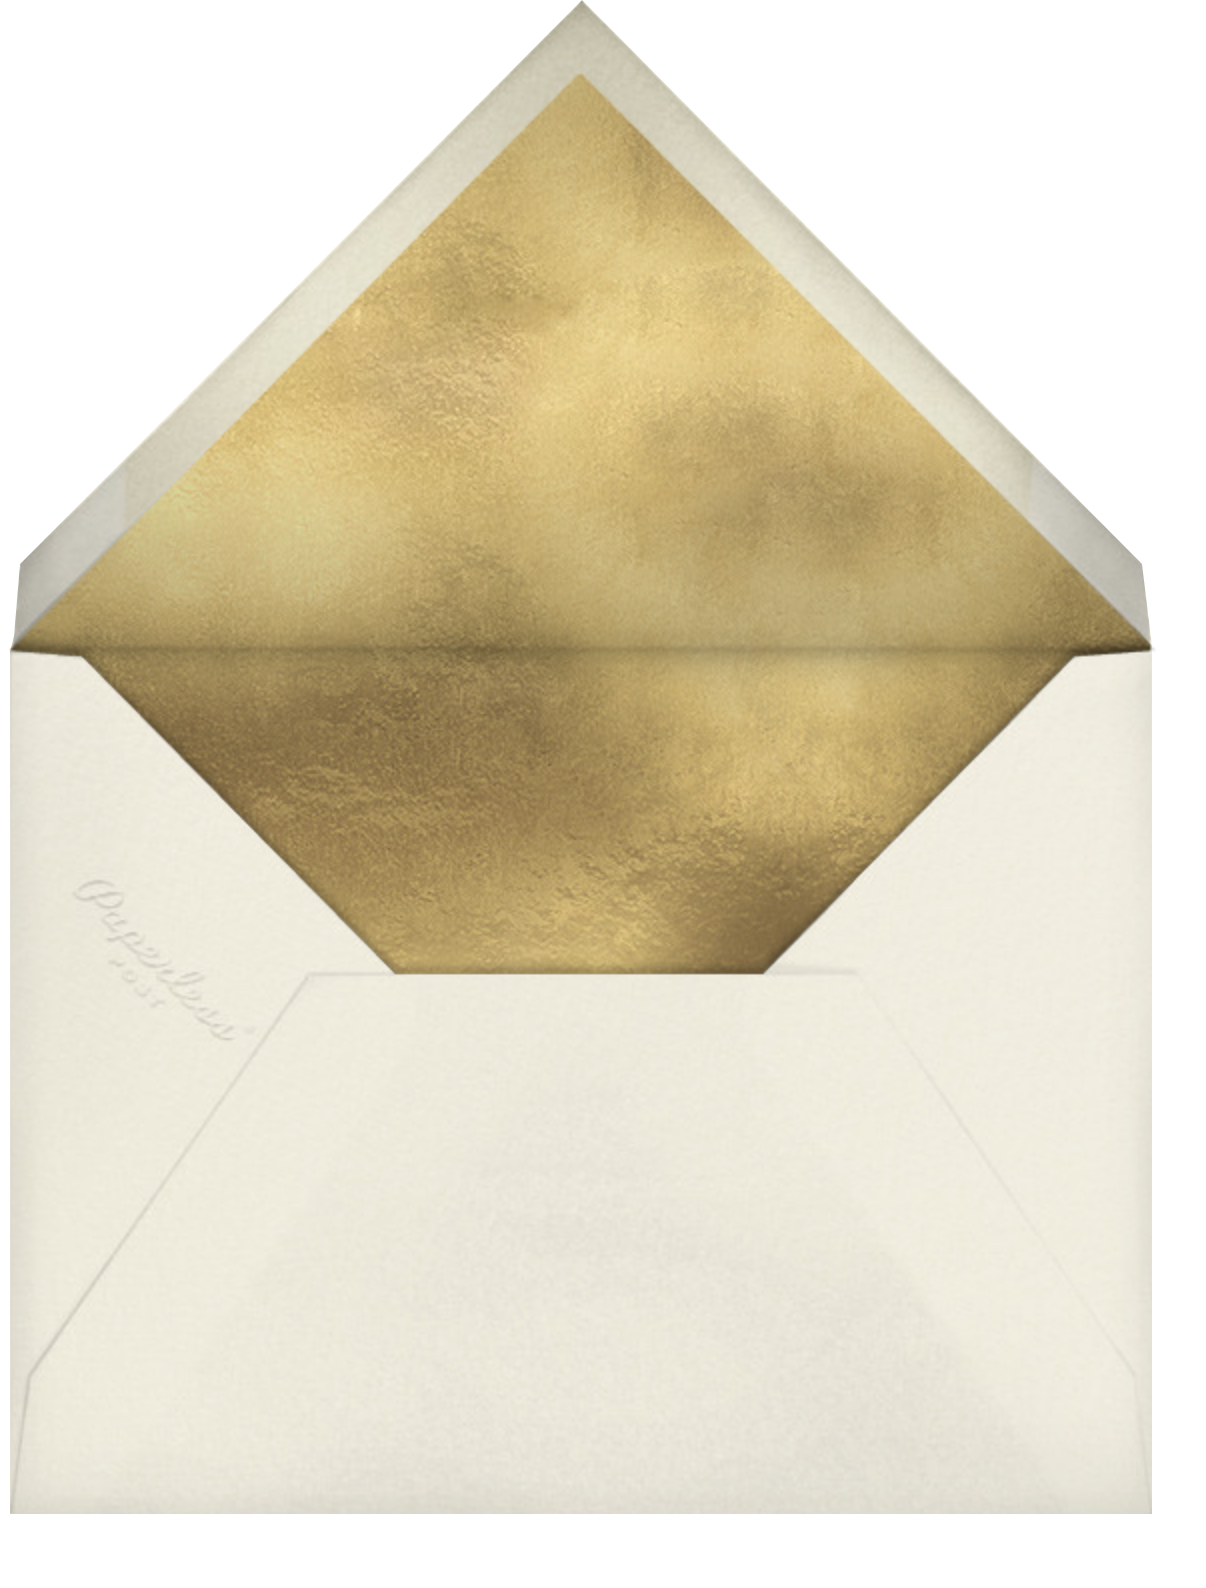 Perfect Spots - Cream - kate spade new york - Holiday cards - envelope back